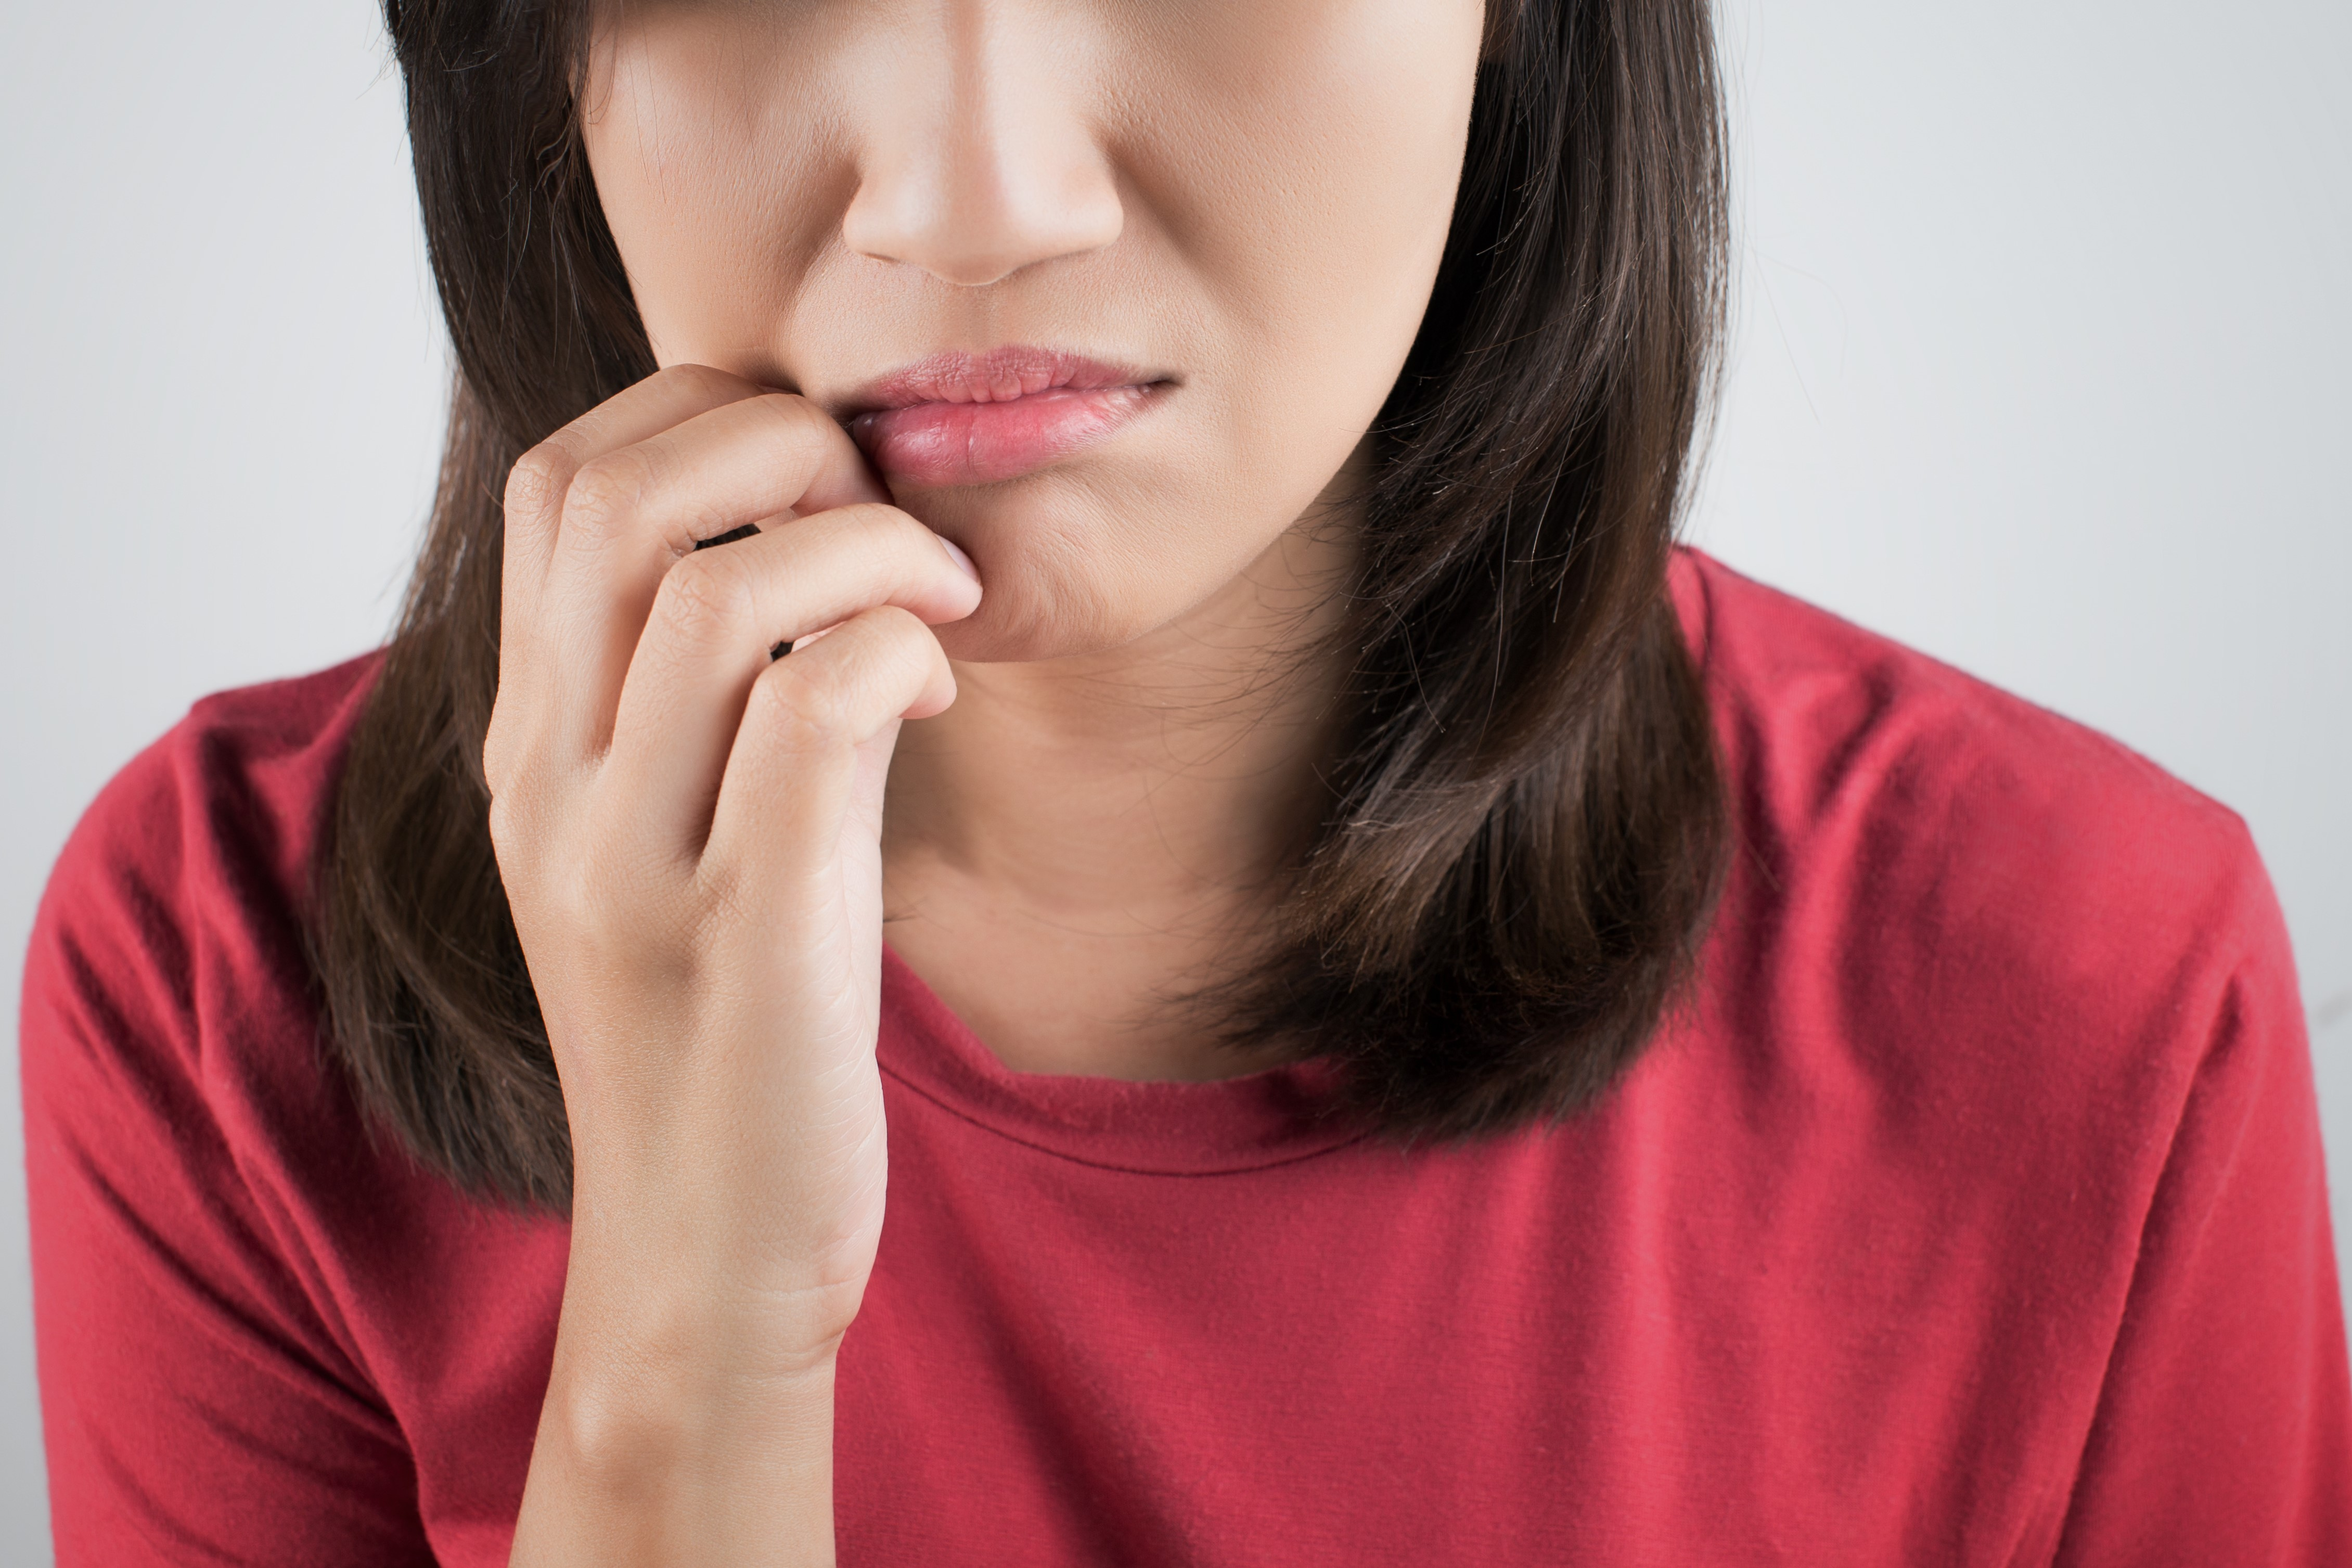 Itchy Mouth | What Causes Itchy Lips, Tongue, & Roof of Mouth